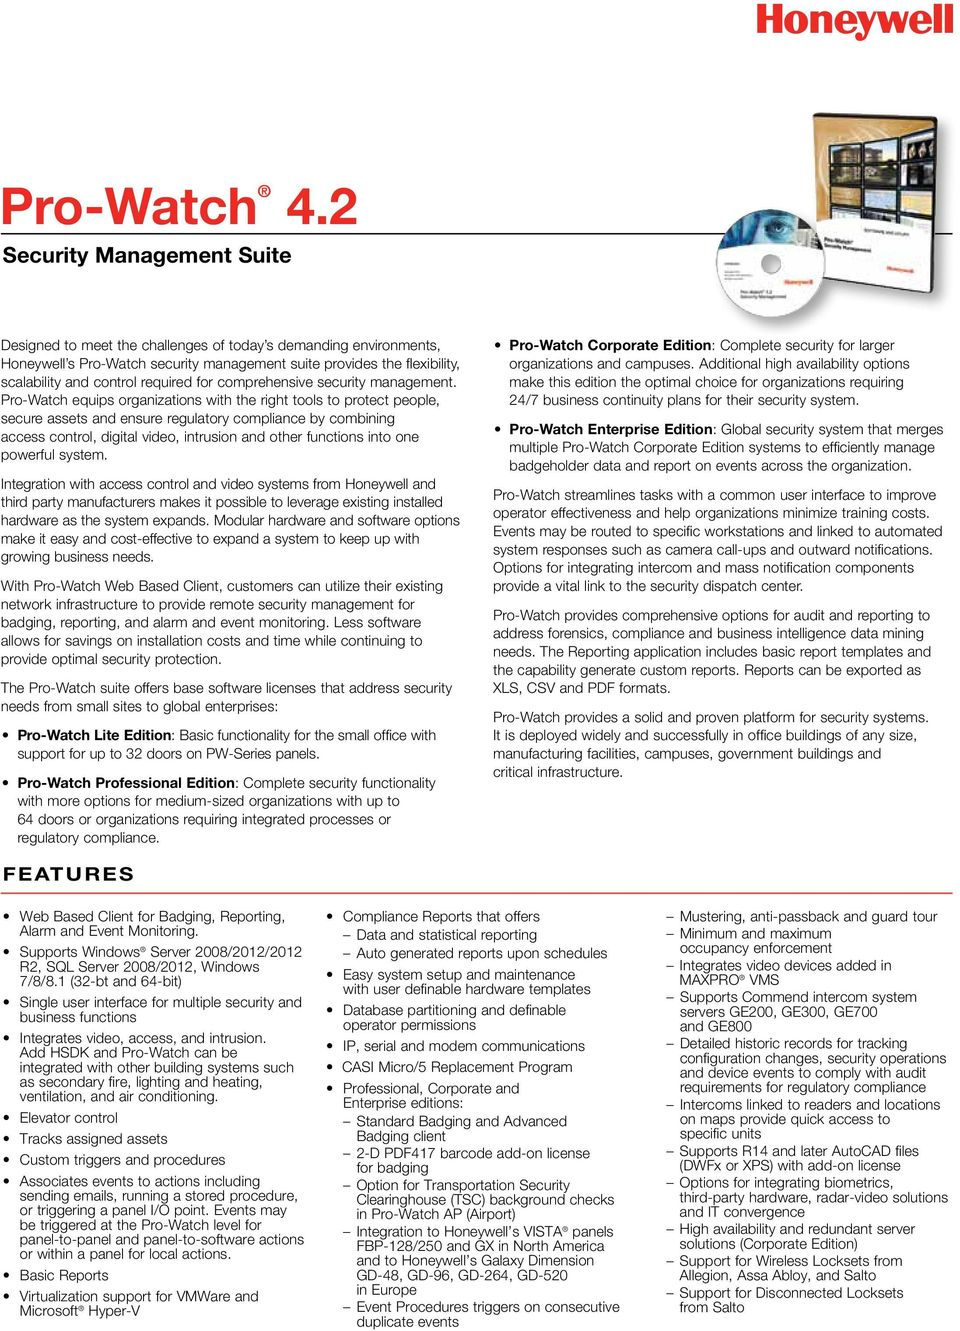 Pro watch 42 security management suite features pdf equips organizations with the right tools to protect people secure assets and ensure regulatory compliance fandeluxe Gallery